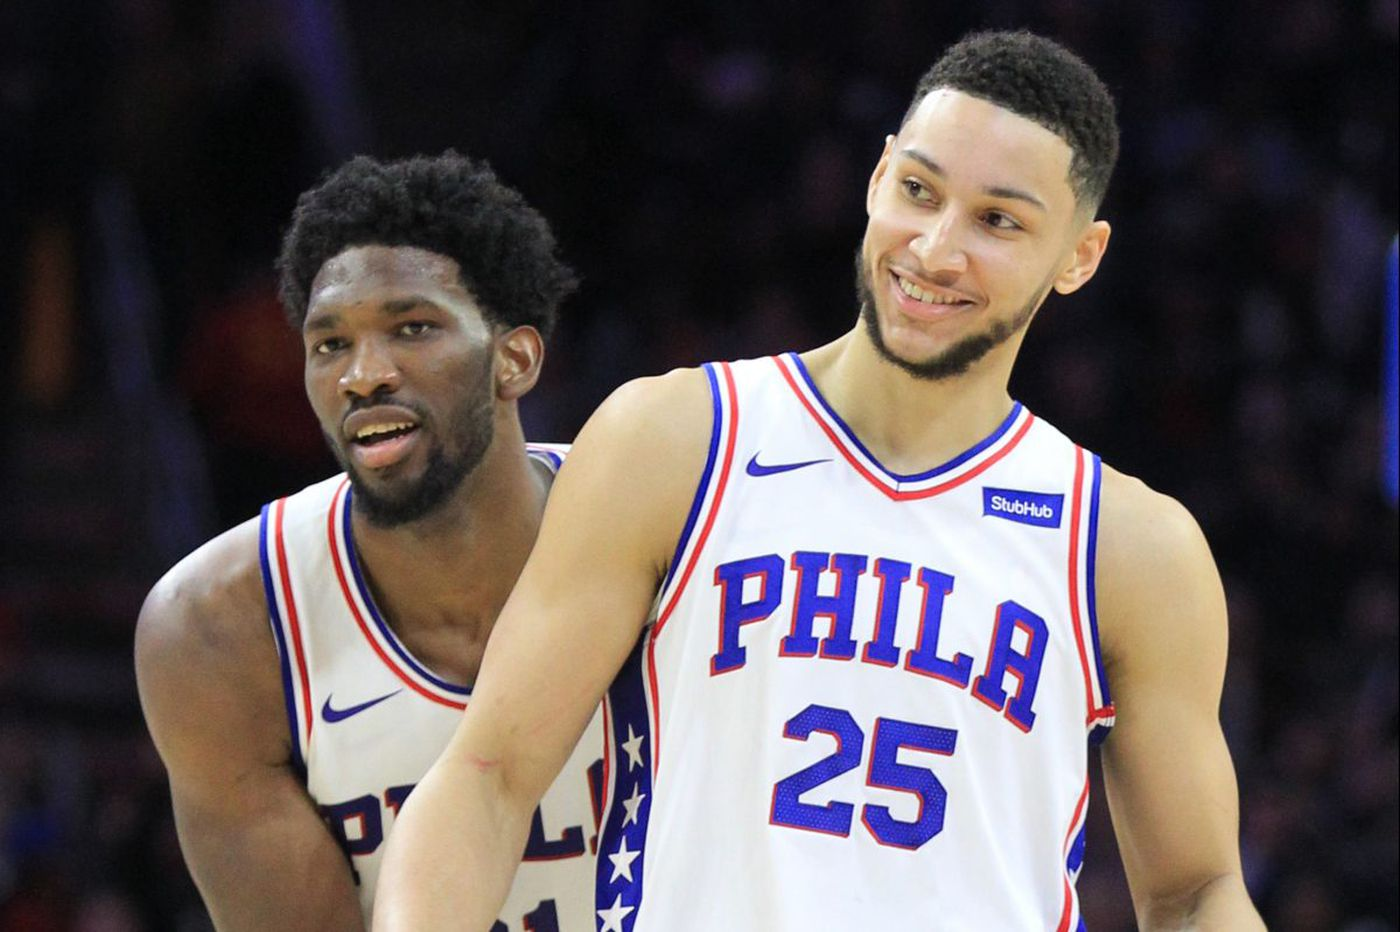 Another cause for excitement: Recent play of 76ers, and budding superstars Joel Embiid and Ben Simmons | David Murphy